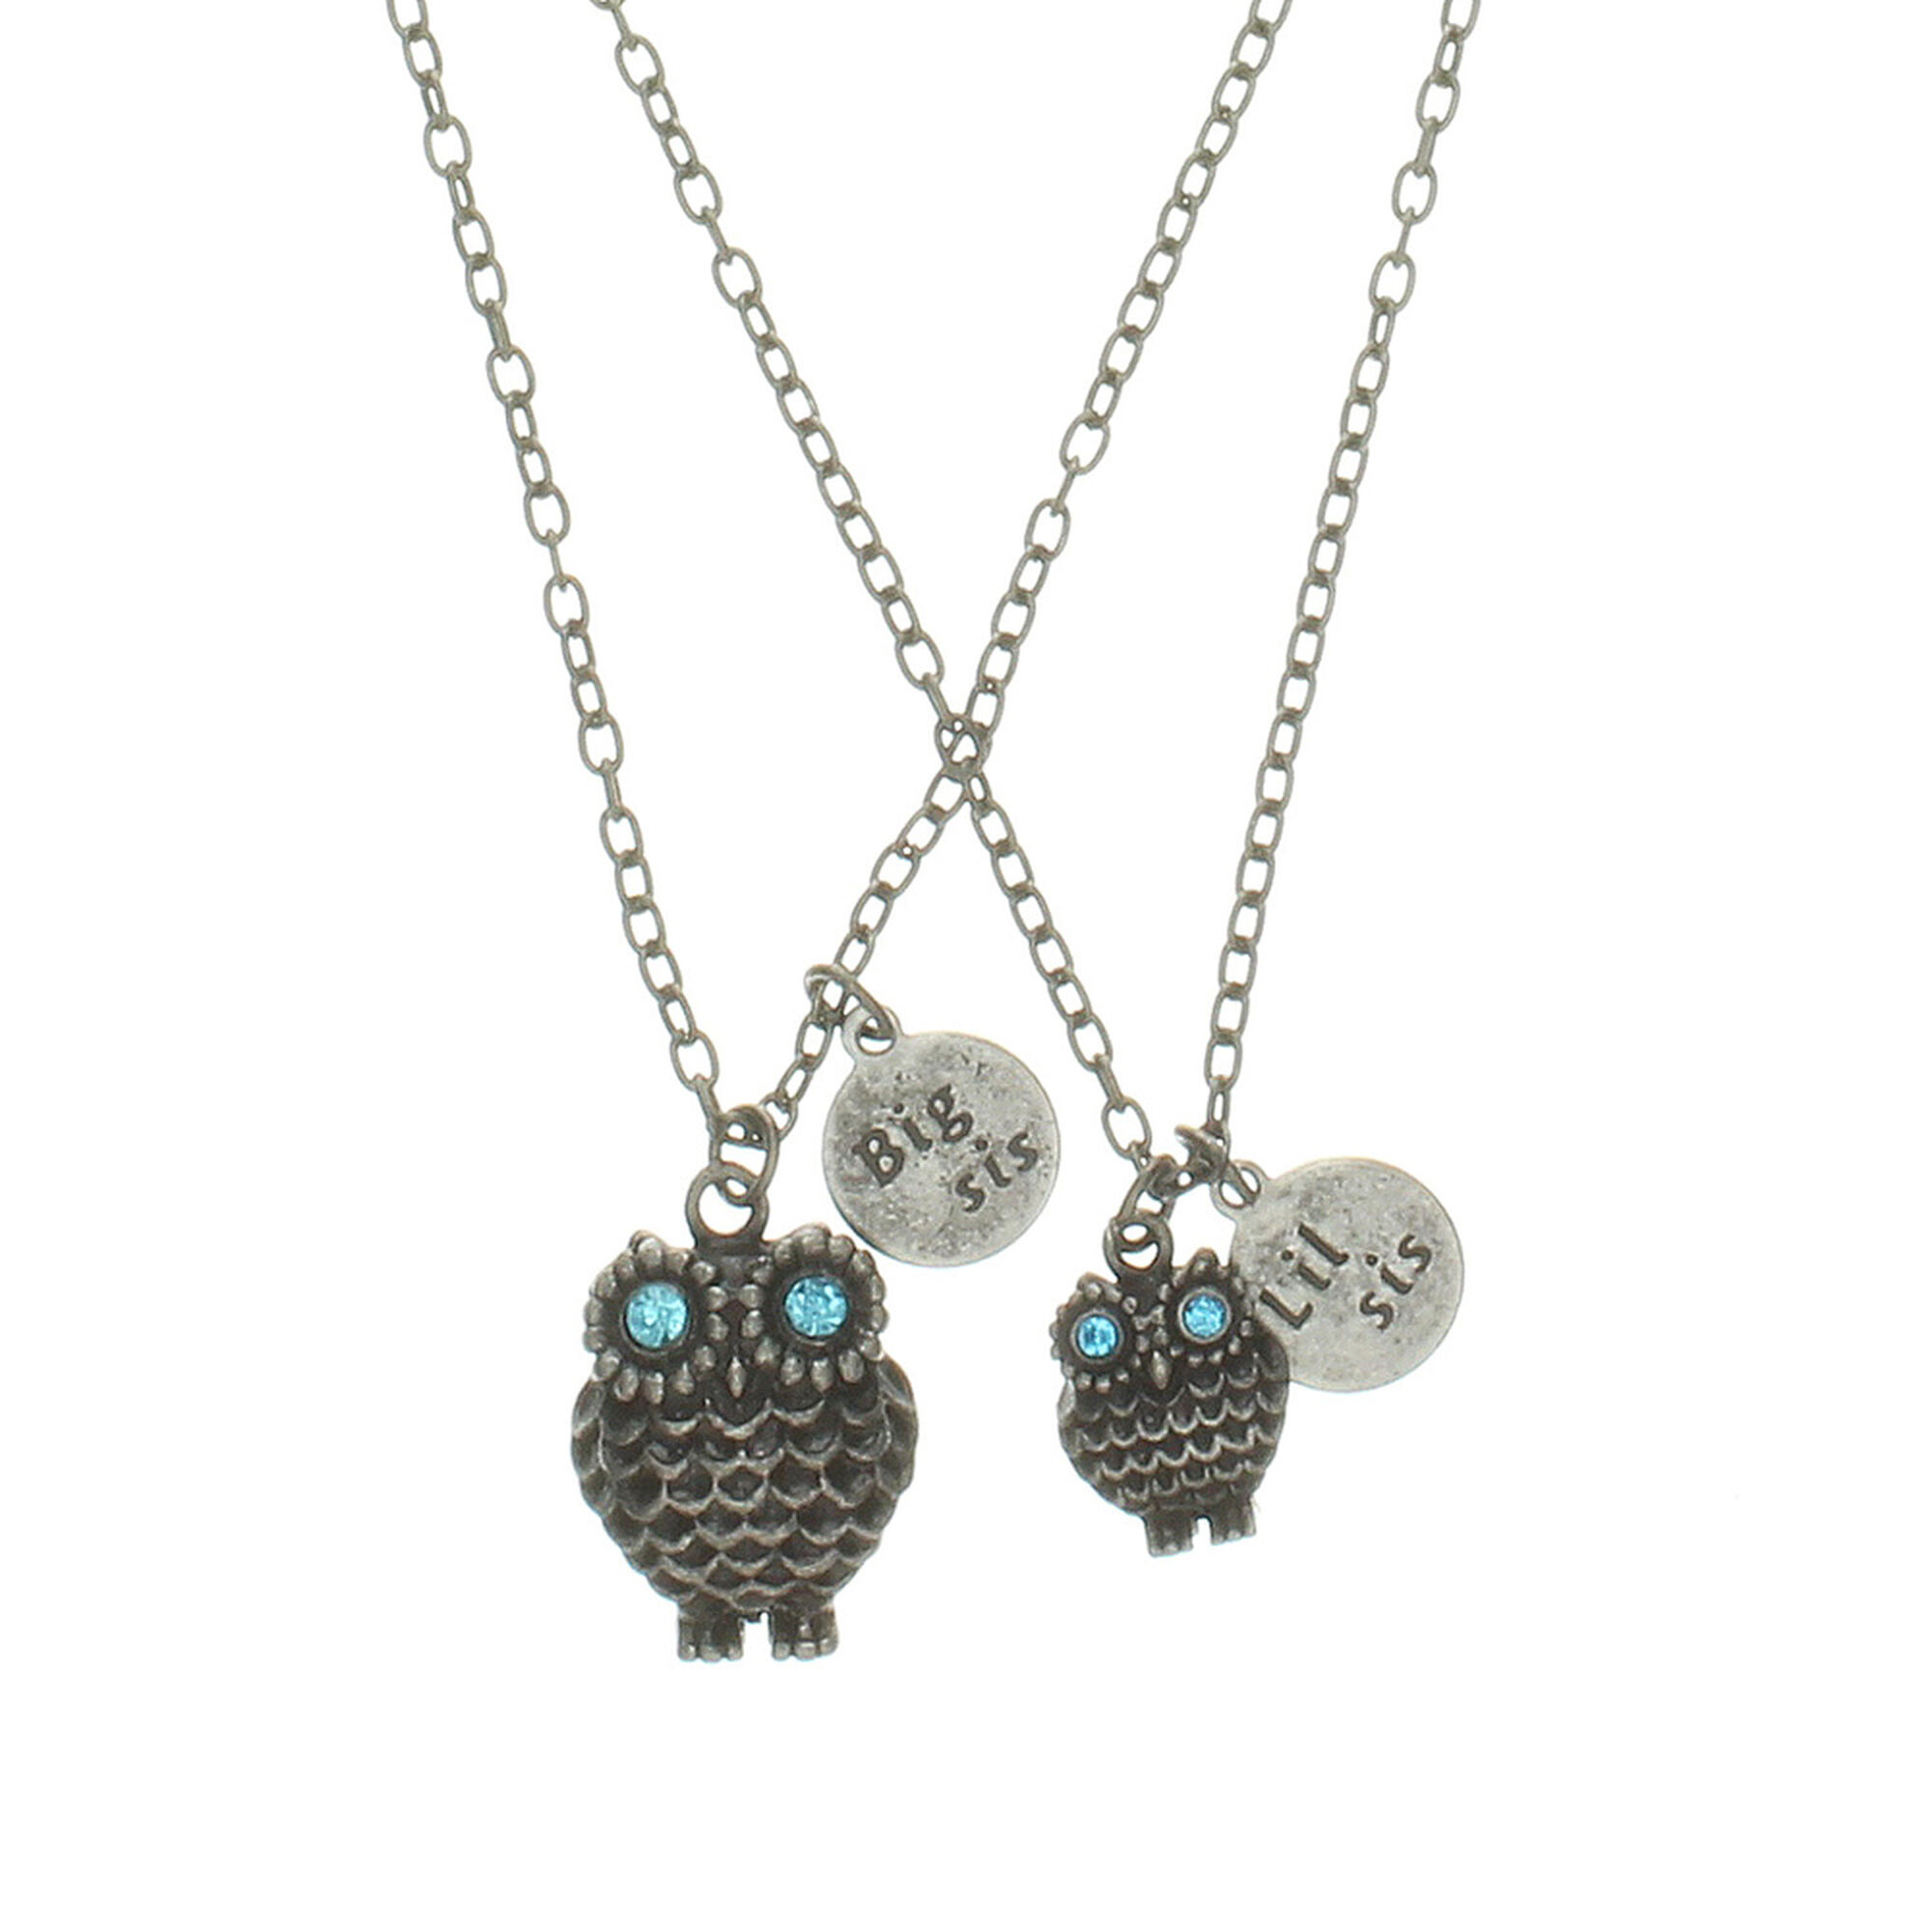 Big sister little sister owl pendant necklace claires us big sister little sister owl pendant necklace mozeypictures Image collections